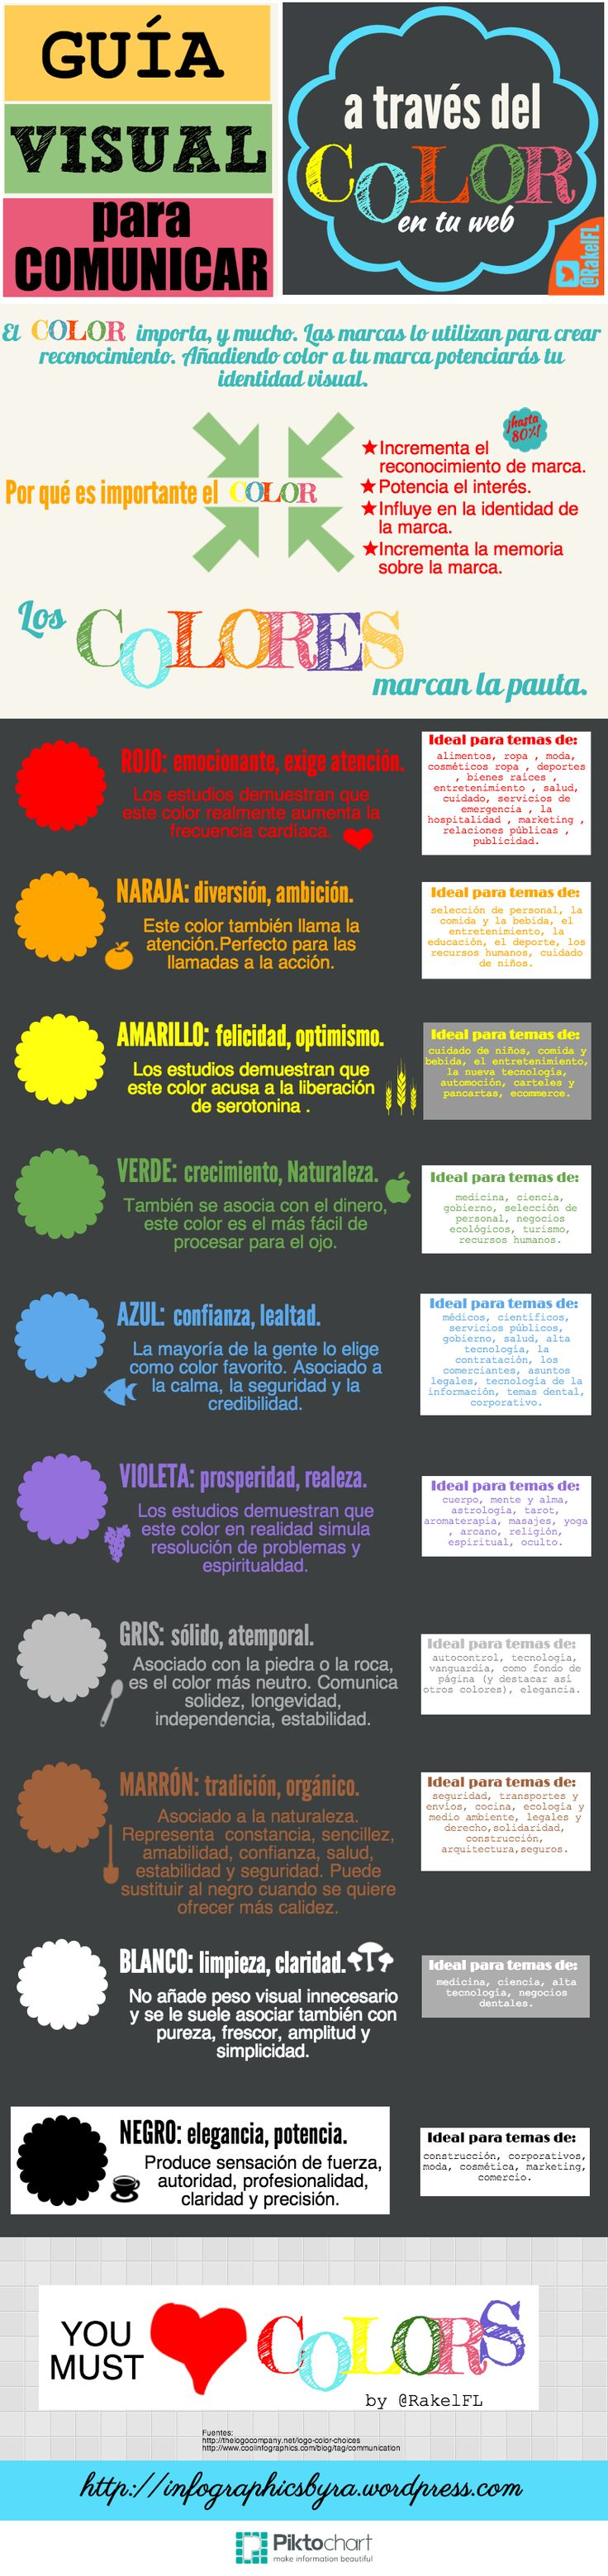 Guía visual para comunicar a través del color en tu web, infographic by Rakel Felipe.